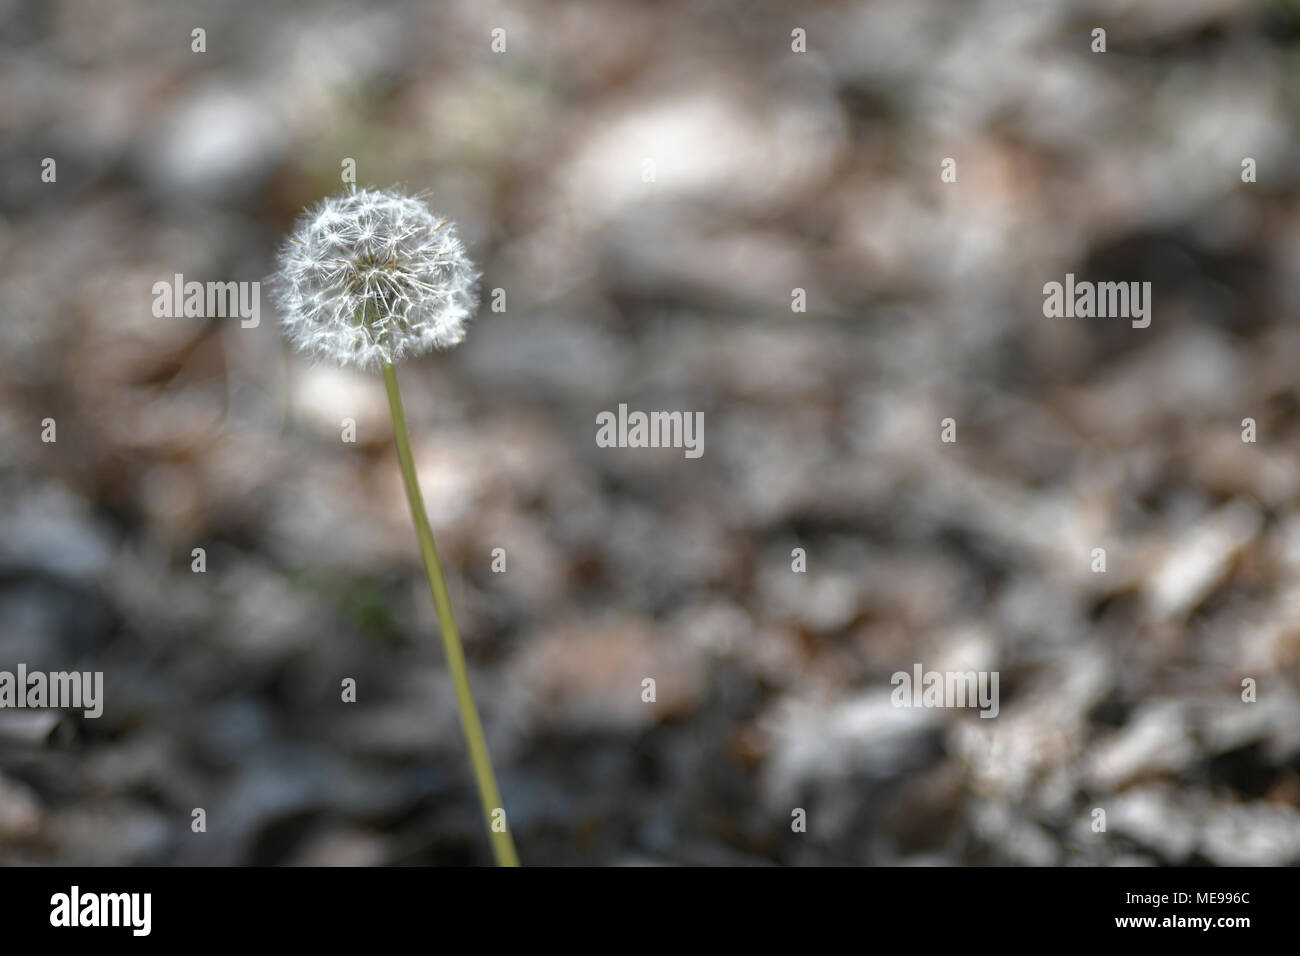 Dandelion with defocused background - Stock Image